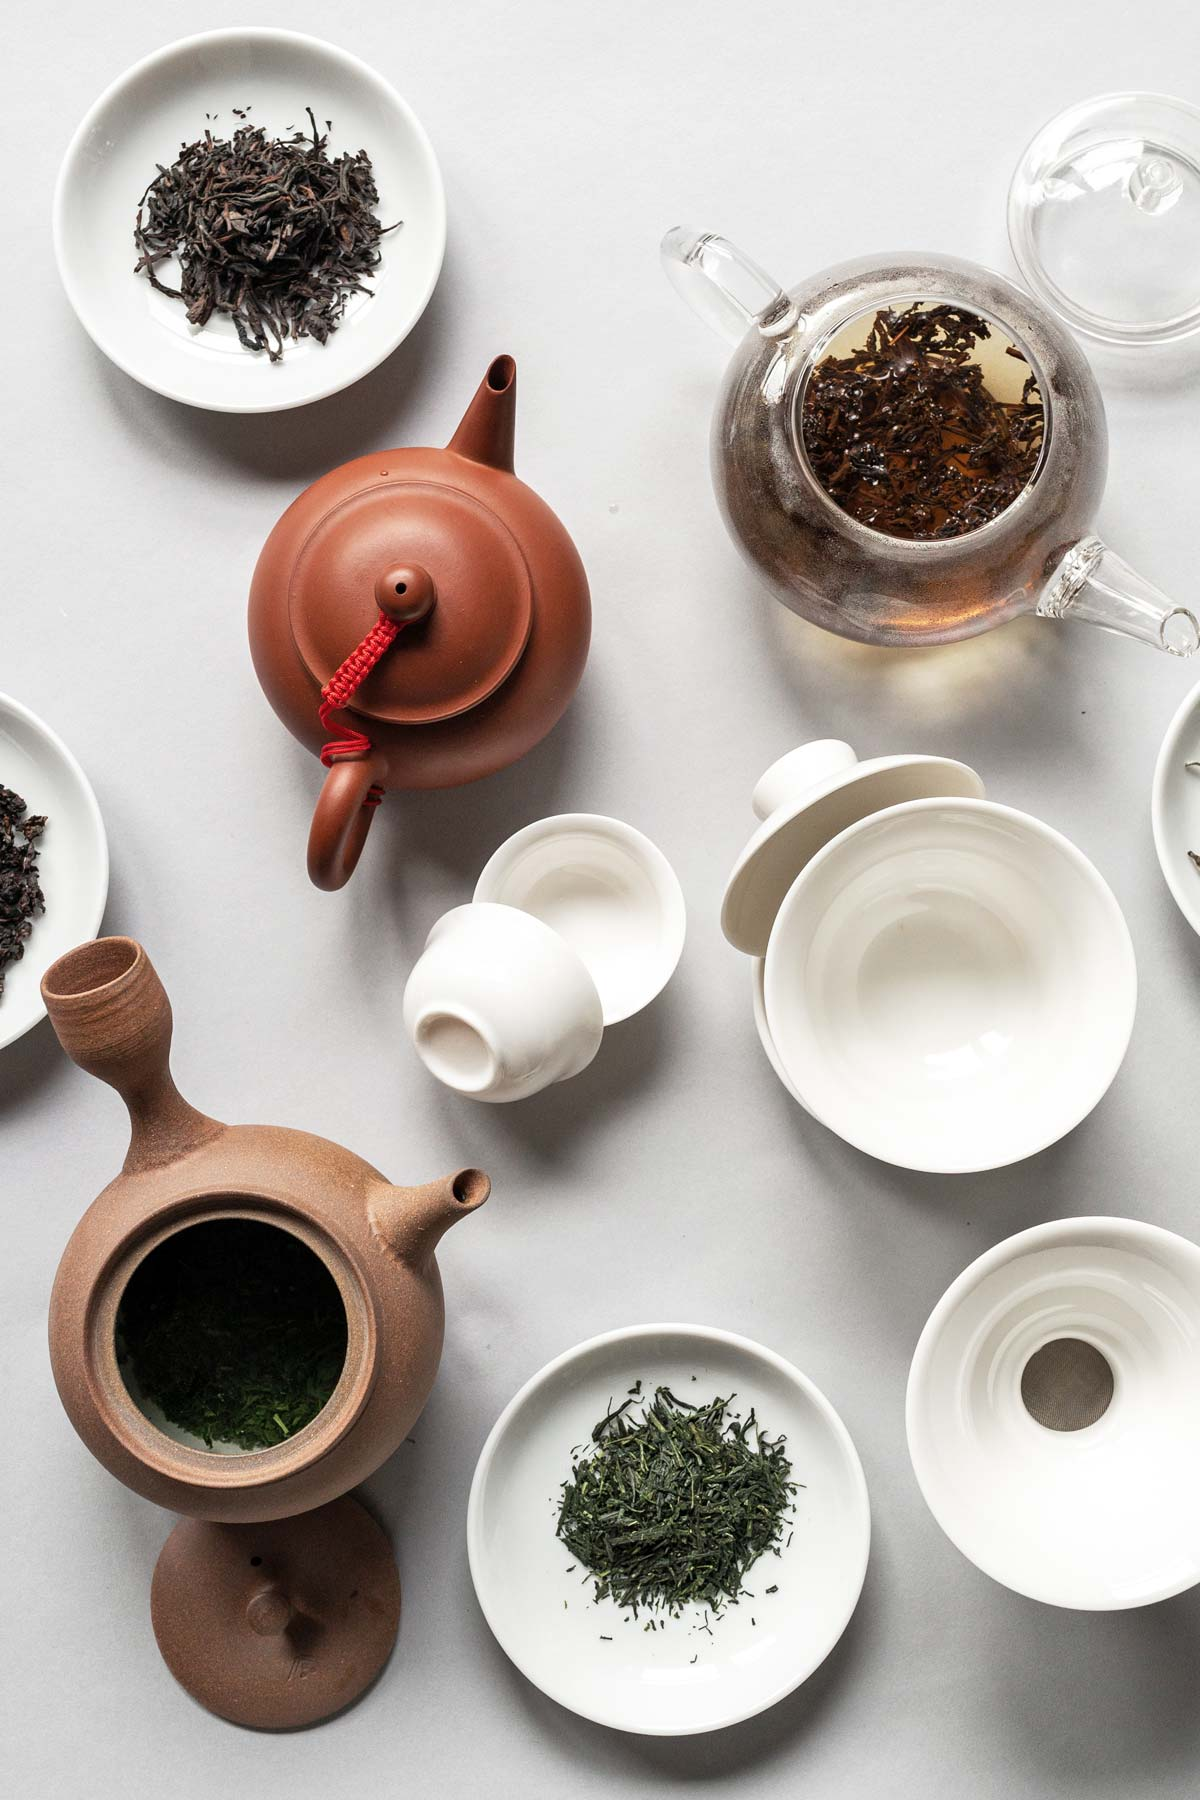 Different teapots and small plates of loose tea.